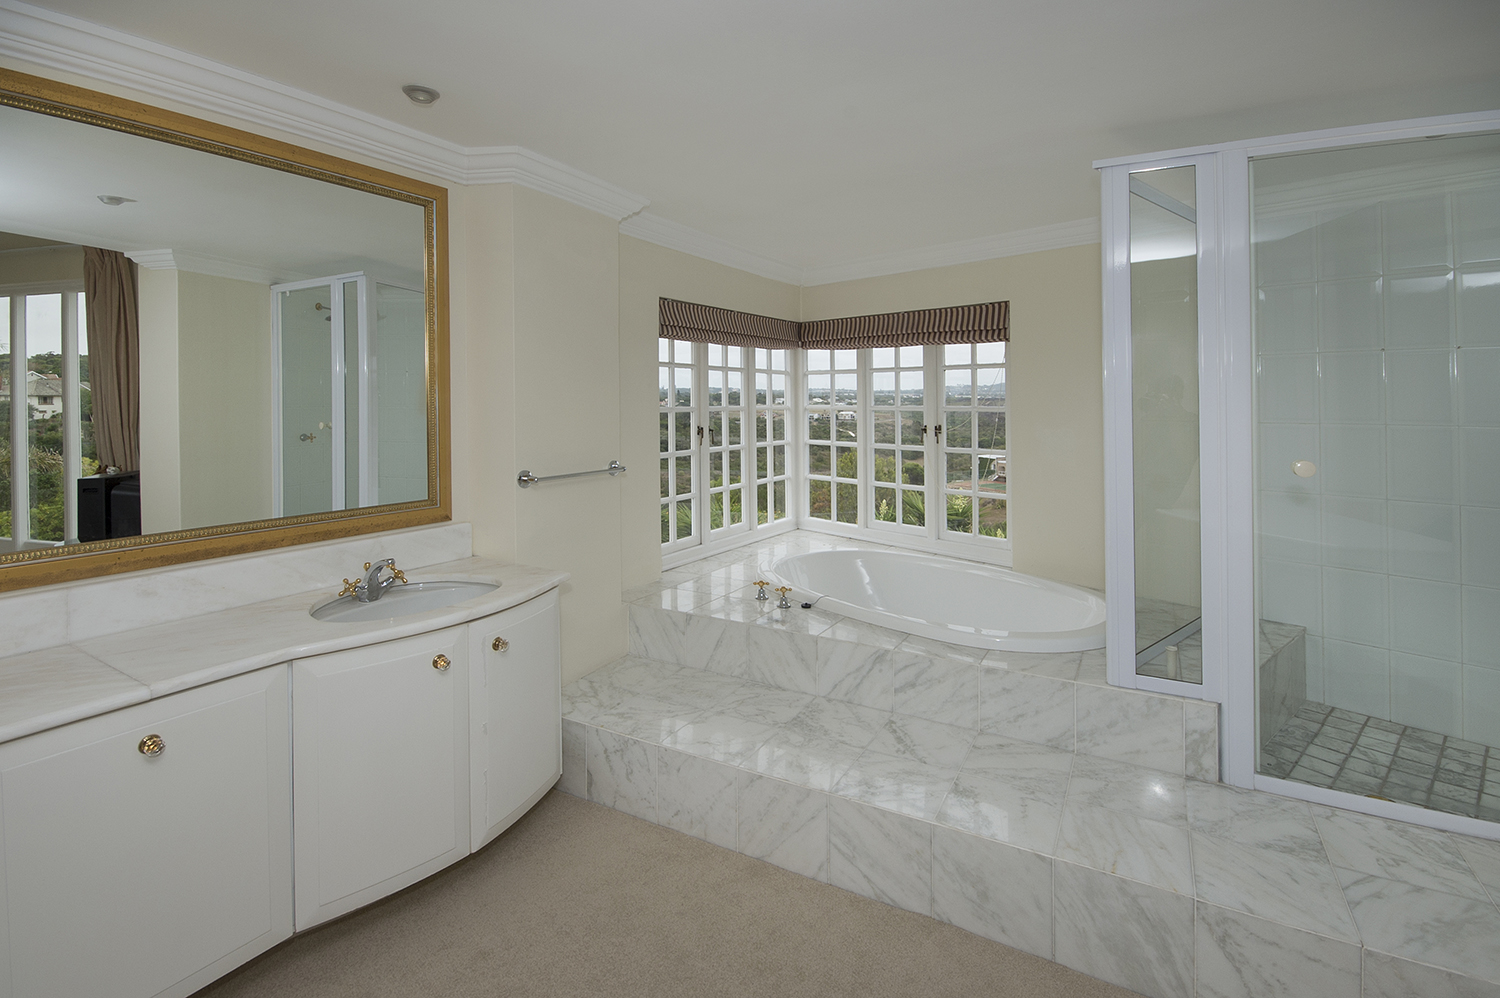 4 Bedroom House for sale in Mill Park ENT0024309 : photo#17